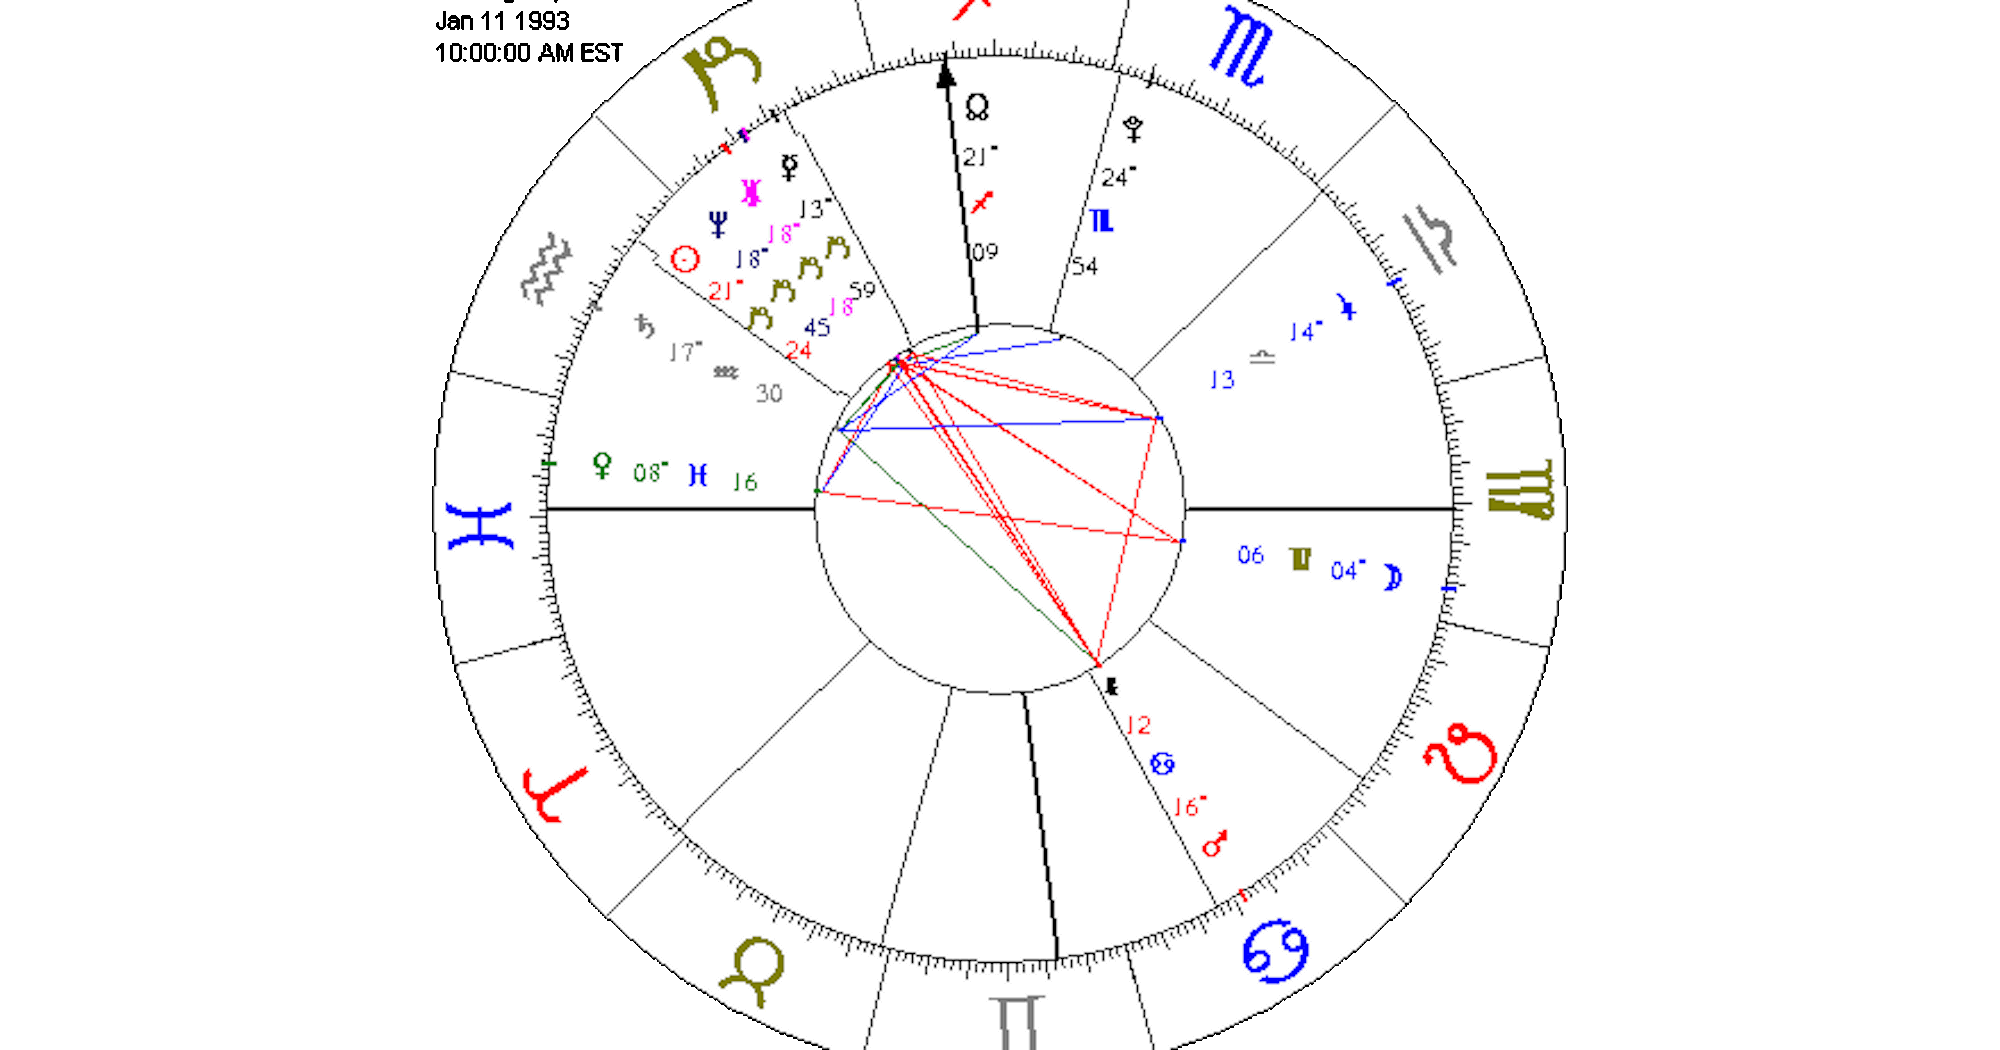 Astrology birth chart analysis how to read natal chart geenschuldenfo Images